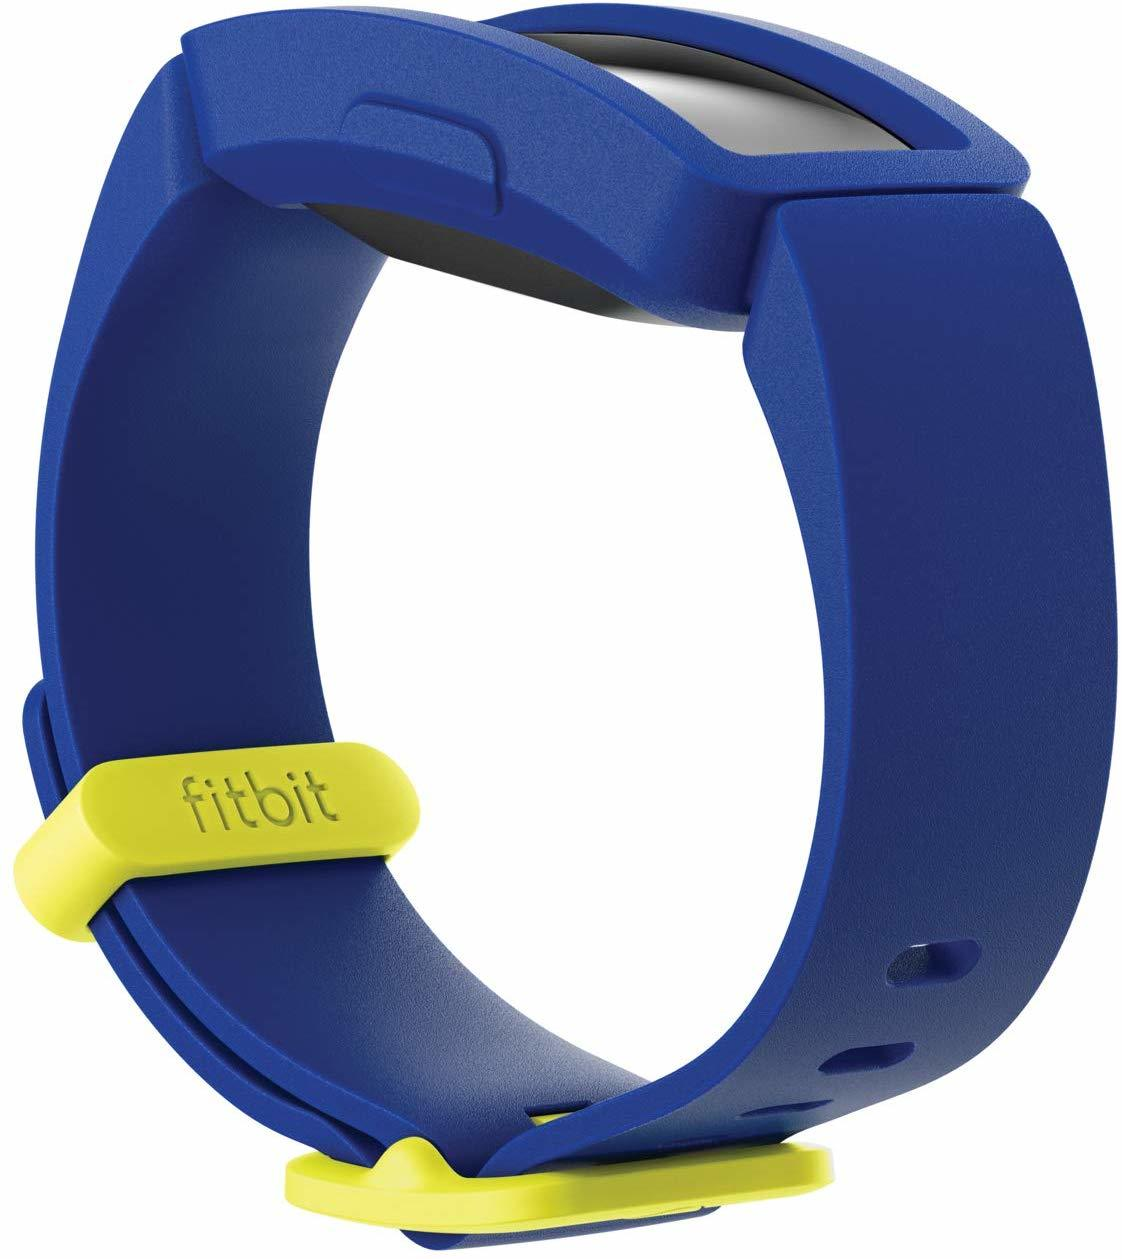 Fitbit Ace 2 Kid's Activity Tracker - Night Sky/Neon Yellow image